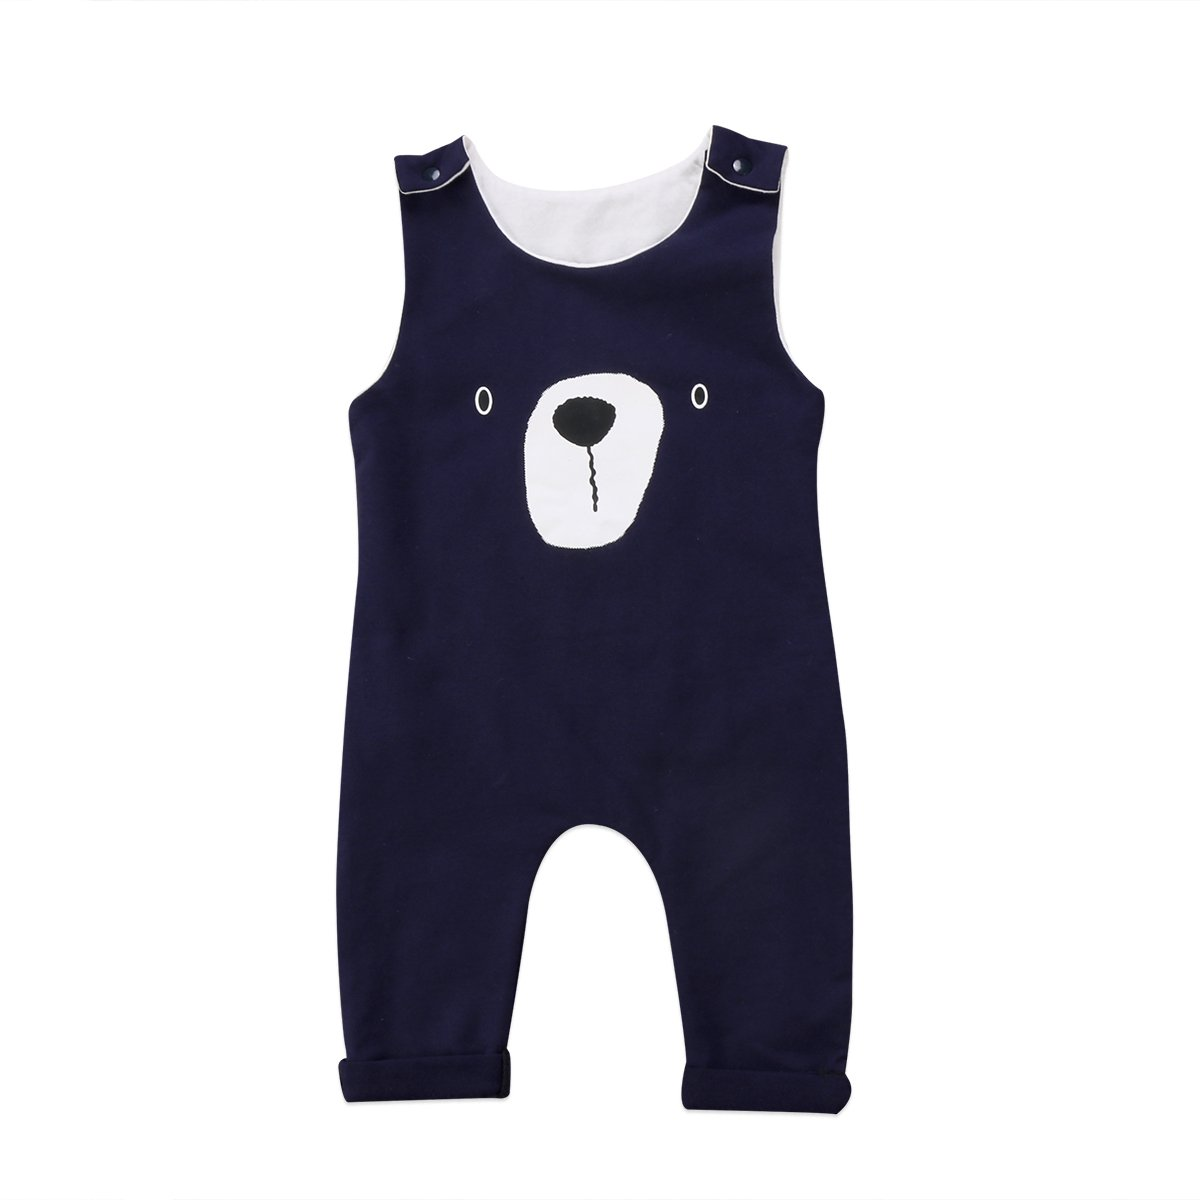 a5131579f Emmababy Newborn Infant Baby Boys Sleeveless Harem Romper Jumpsuit Outfits  Overall Clothes One-Piece Bodysuit (Navy Blue, 18~24M)